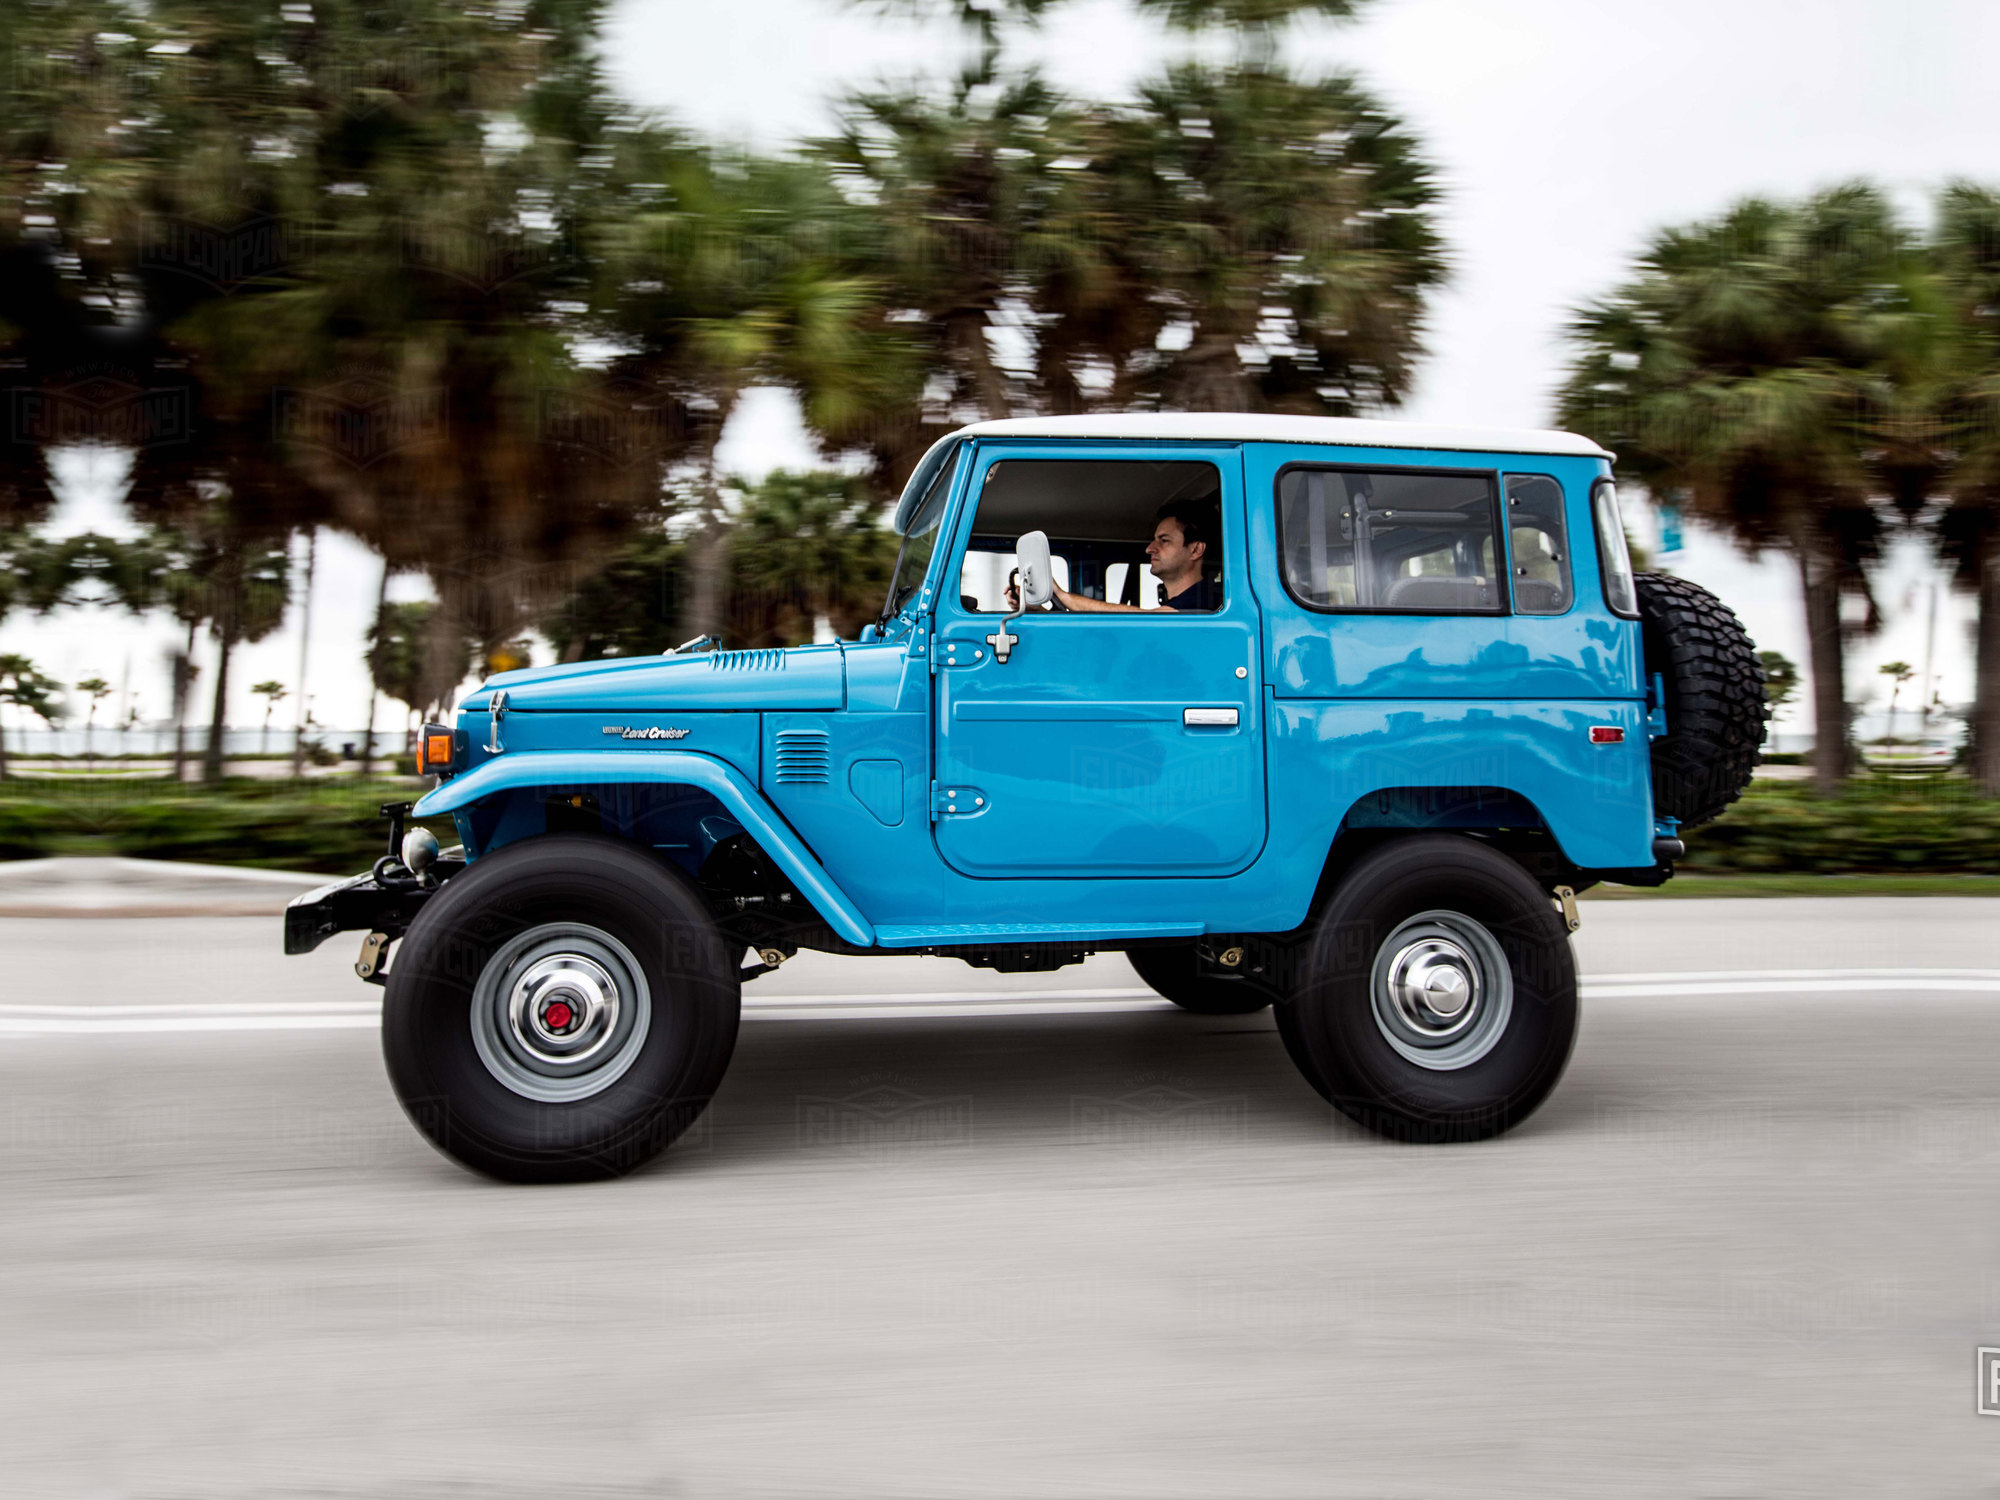 Toyota Fj40 For Sale The Fj Company Land Cruiser Restoration 1973 Owners Manual 1978 265788 Sky Blue